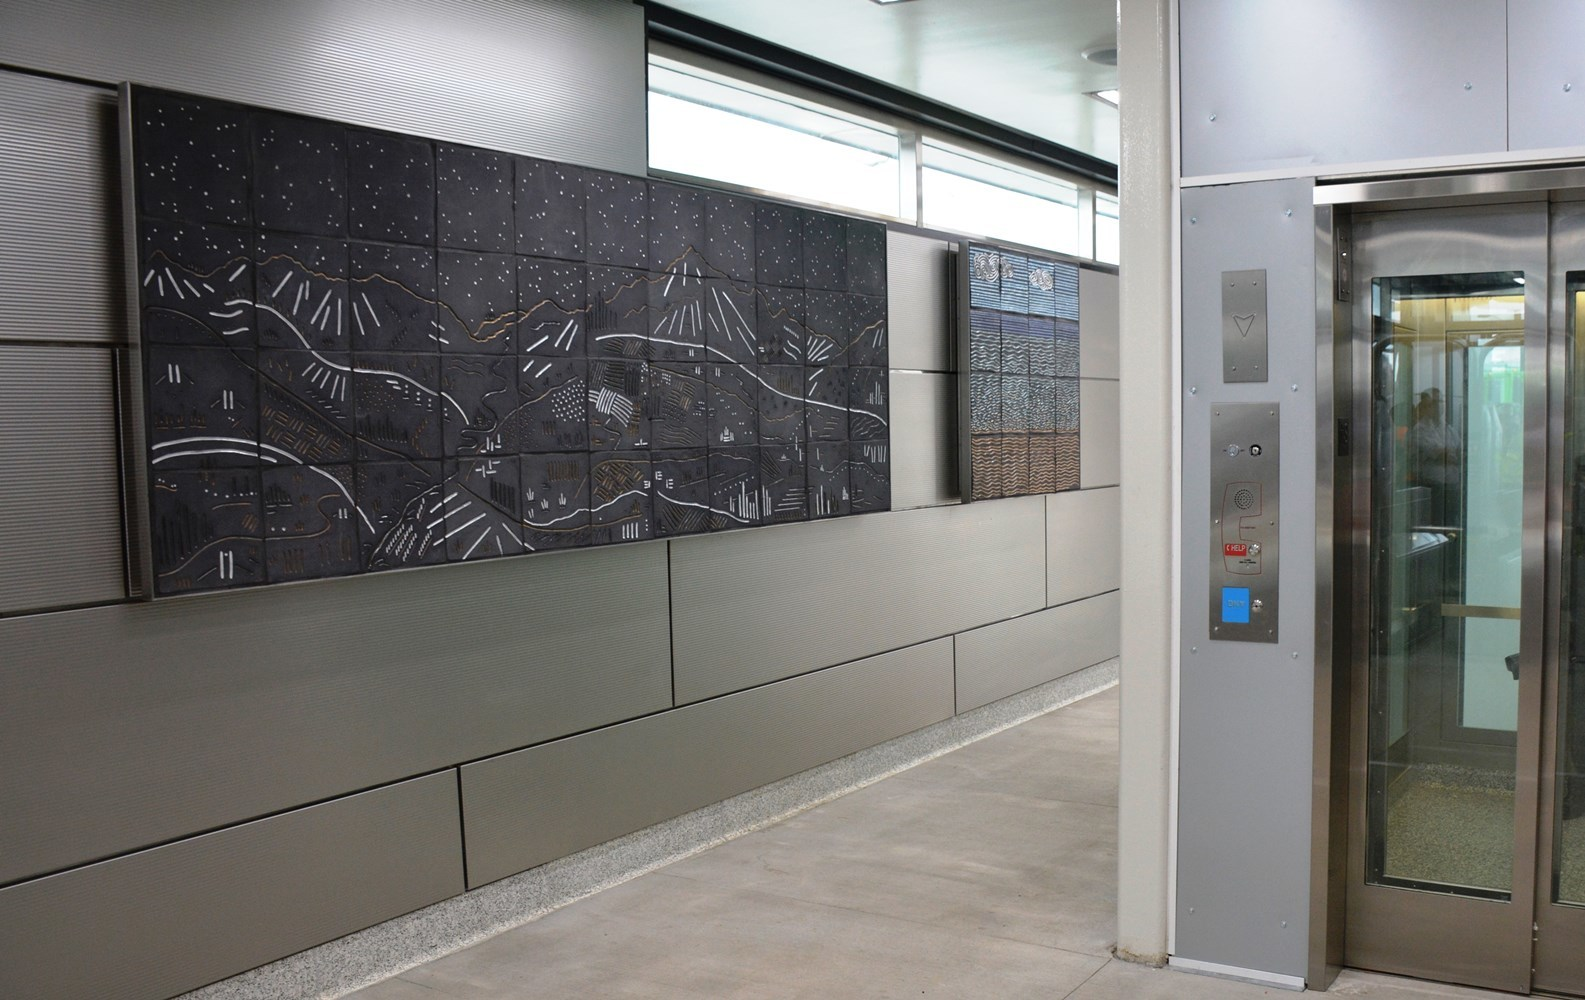 Riders passing through the Ogden entrance of IMD are welcome by two ceramic tile murals known as Vista and Beach, respectively.